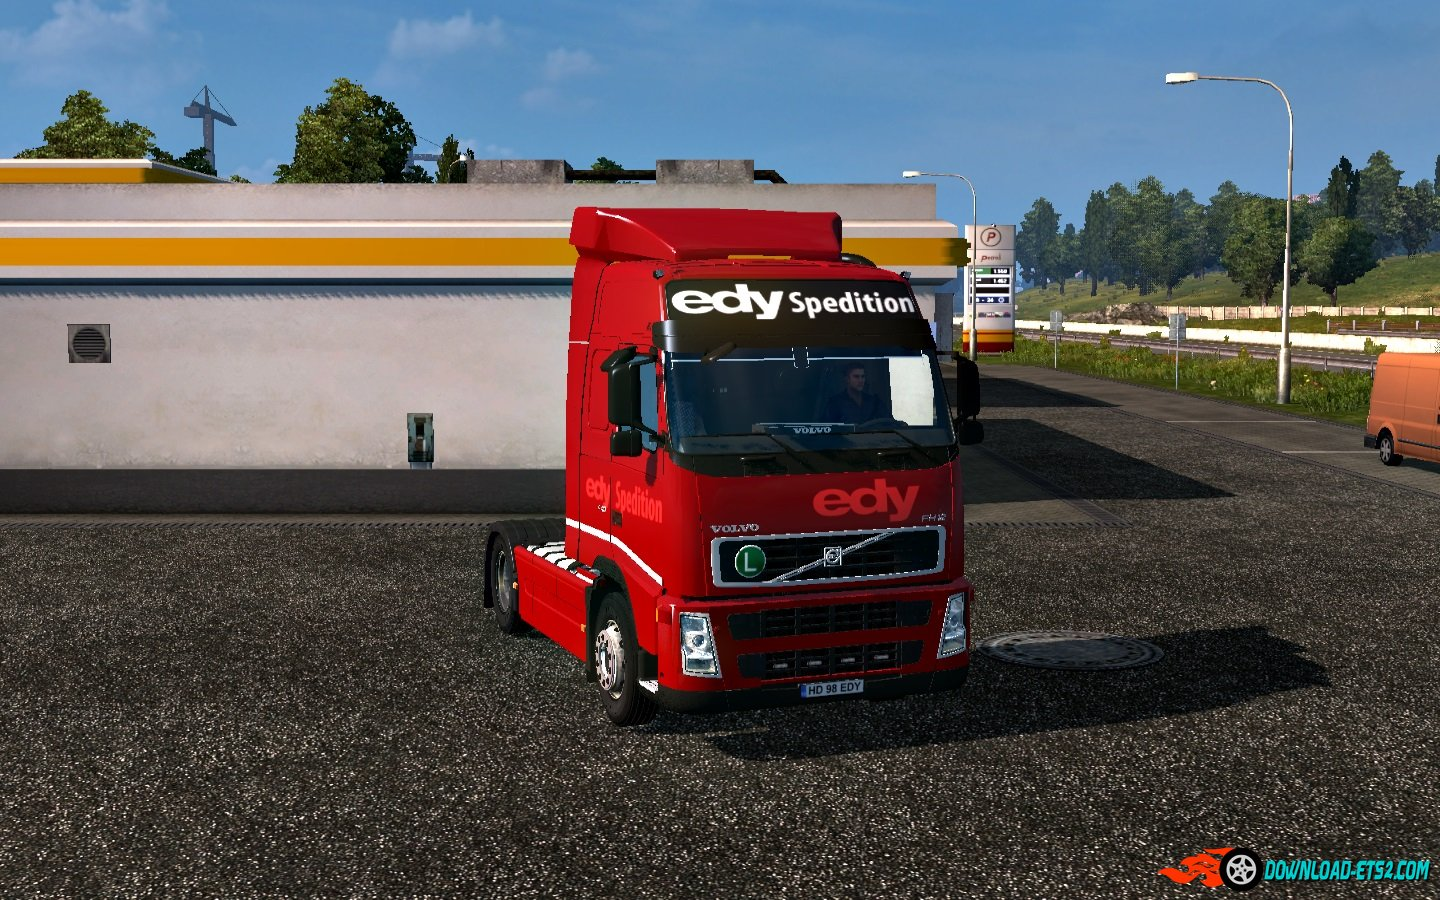 Volvo fh 12 edy spedition